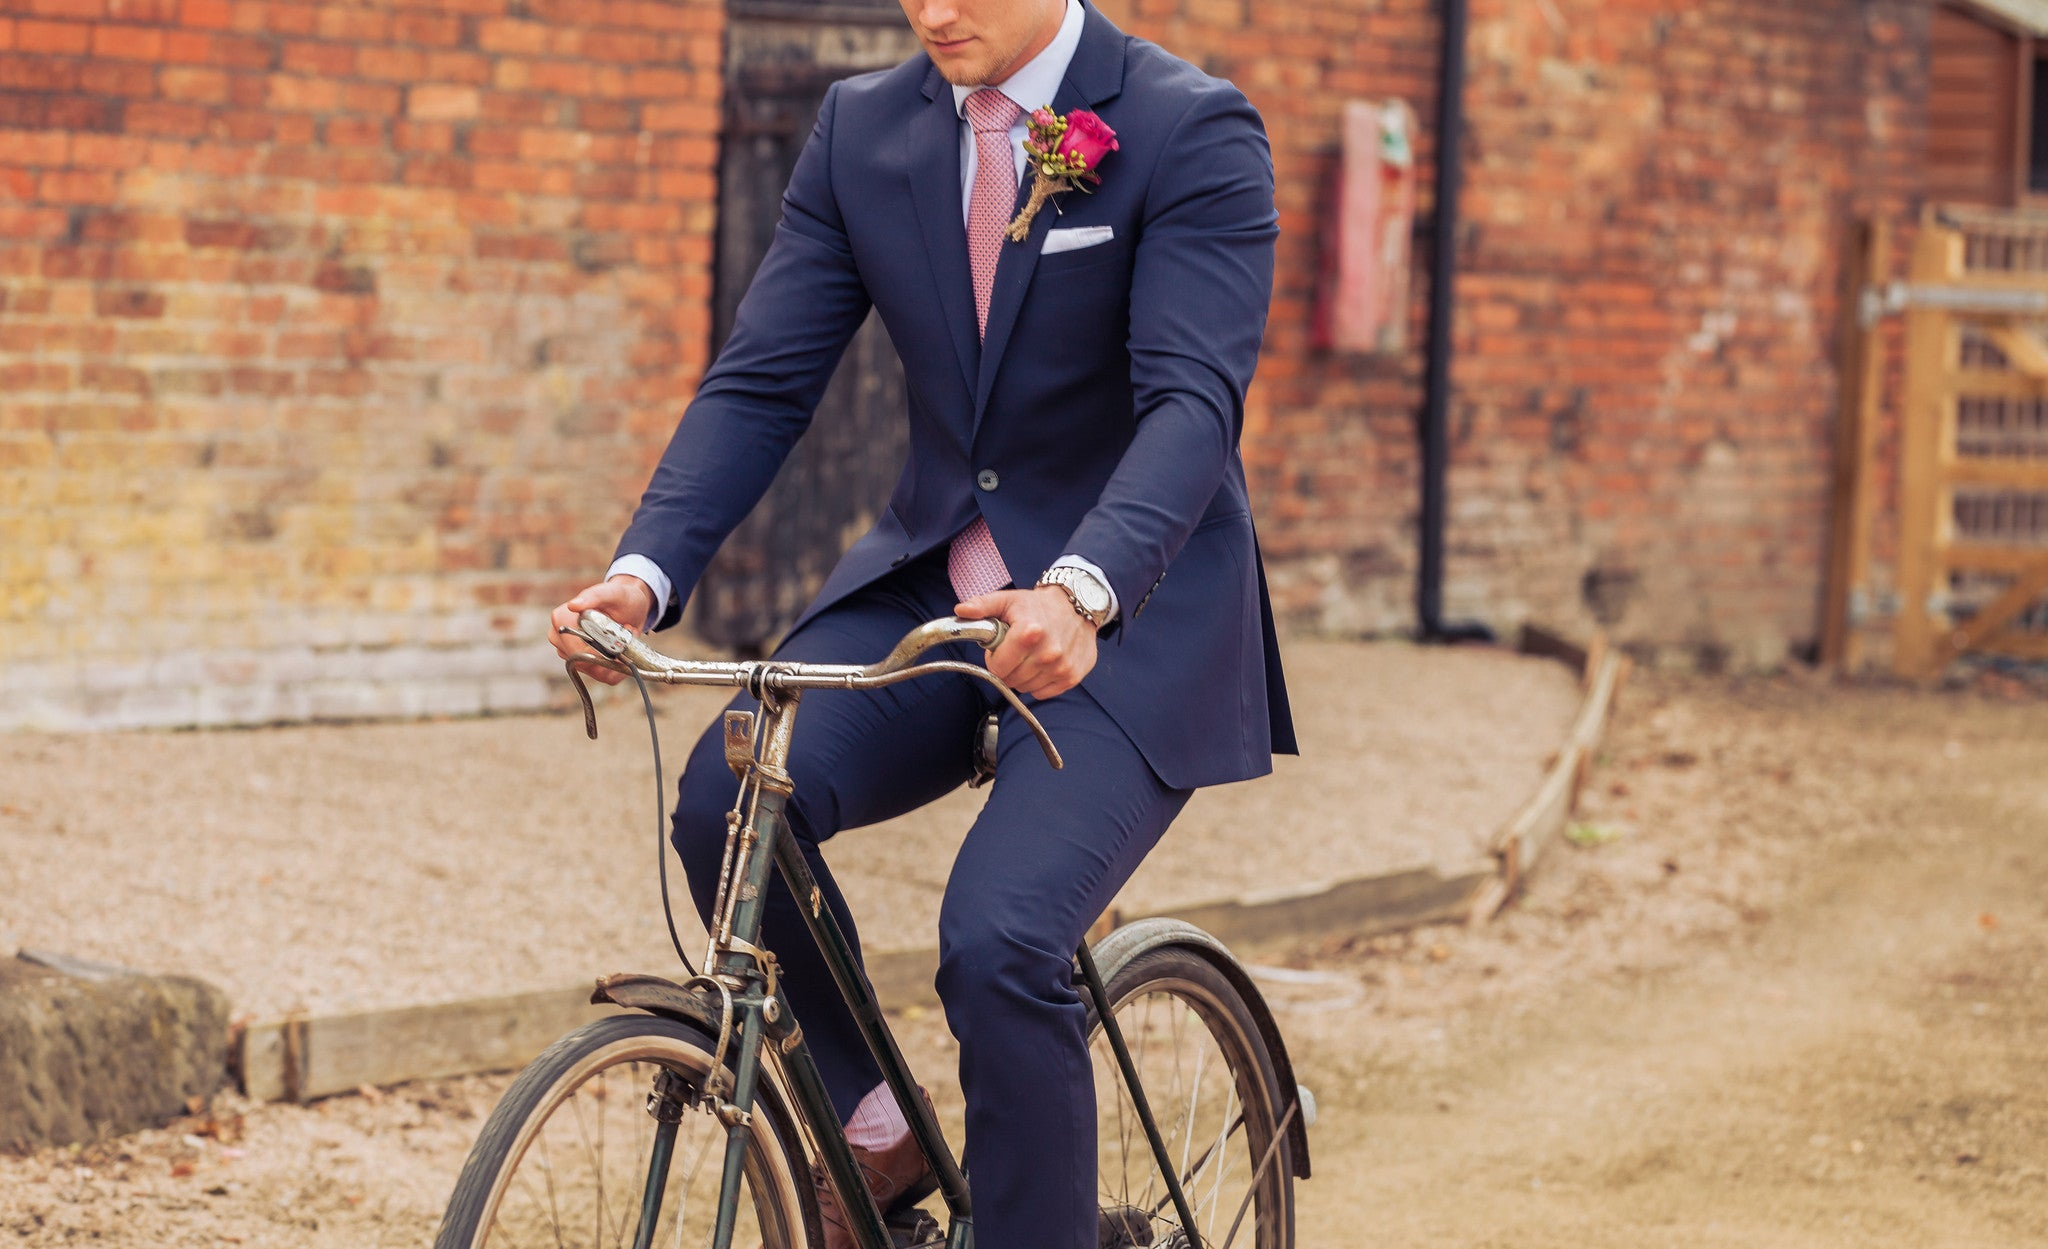 Wedding photoshoot showcasing our wedding buttonhole with the groom riding a bike.